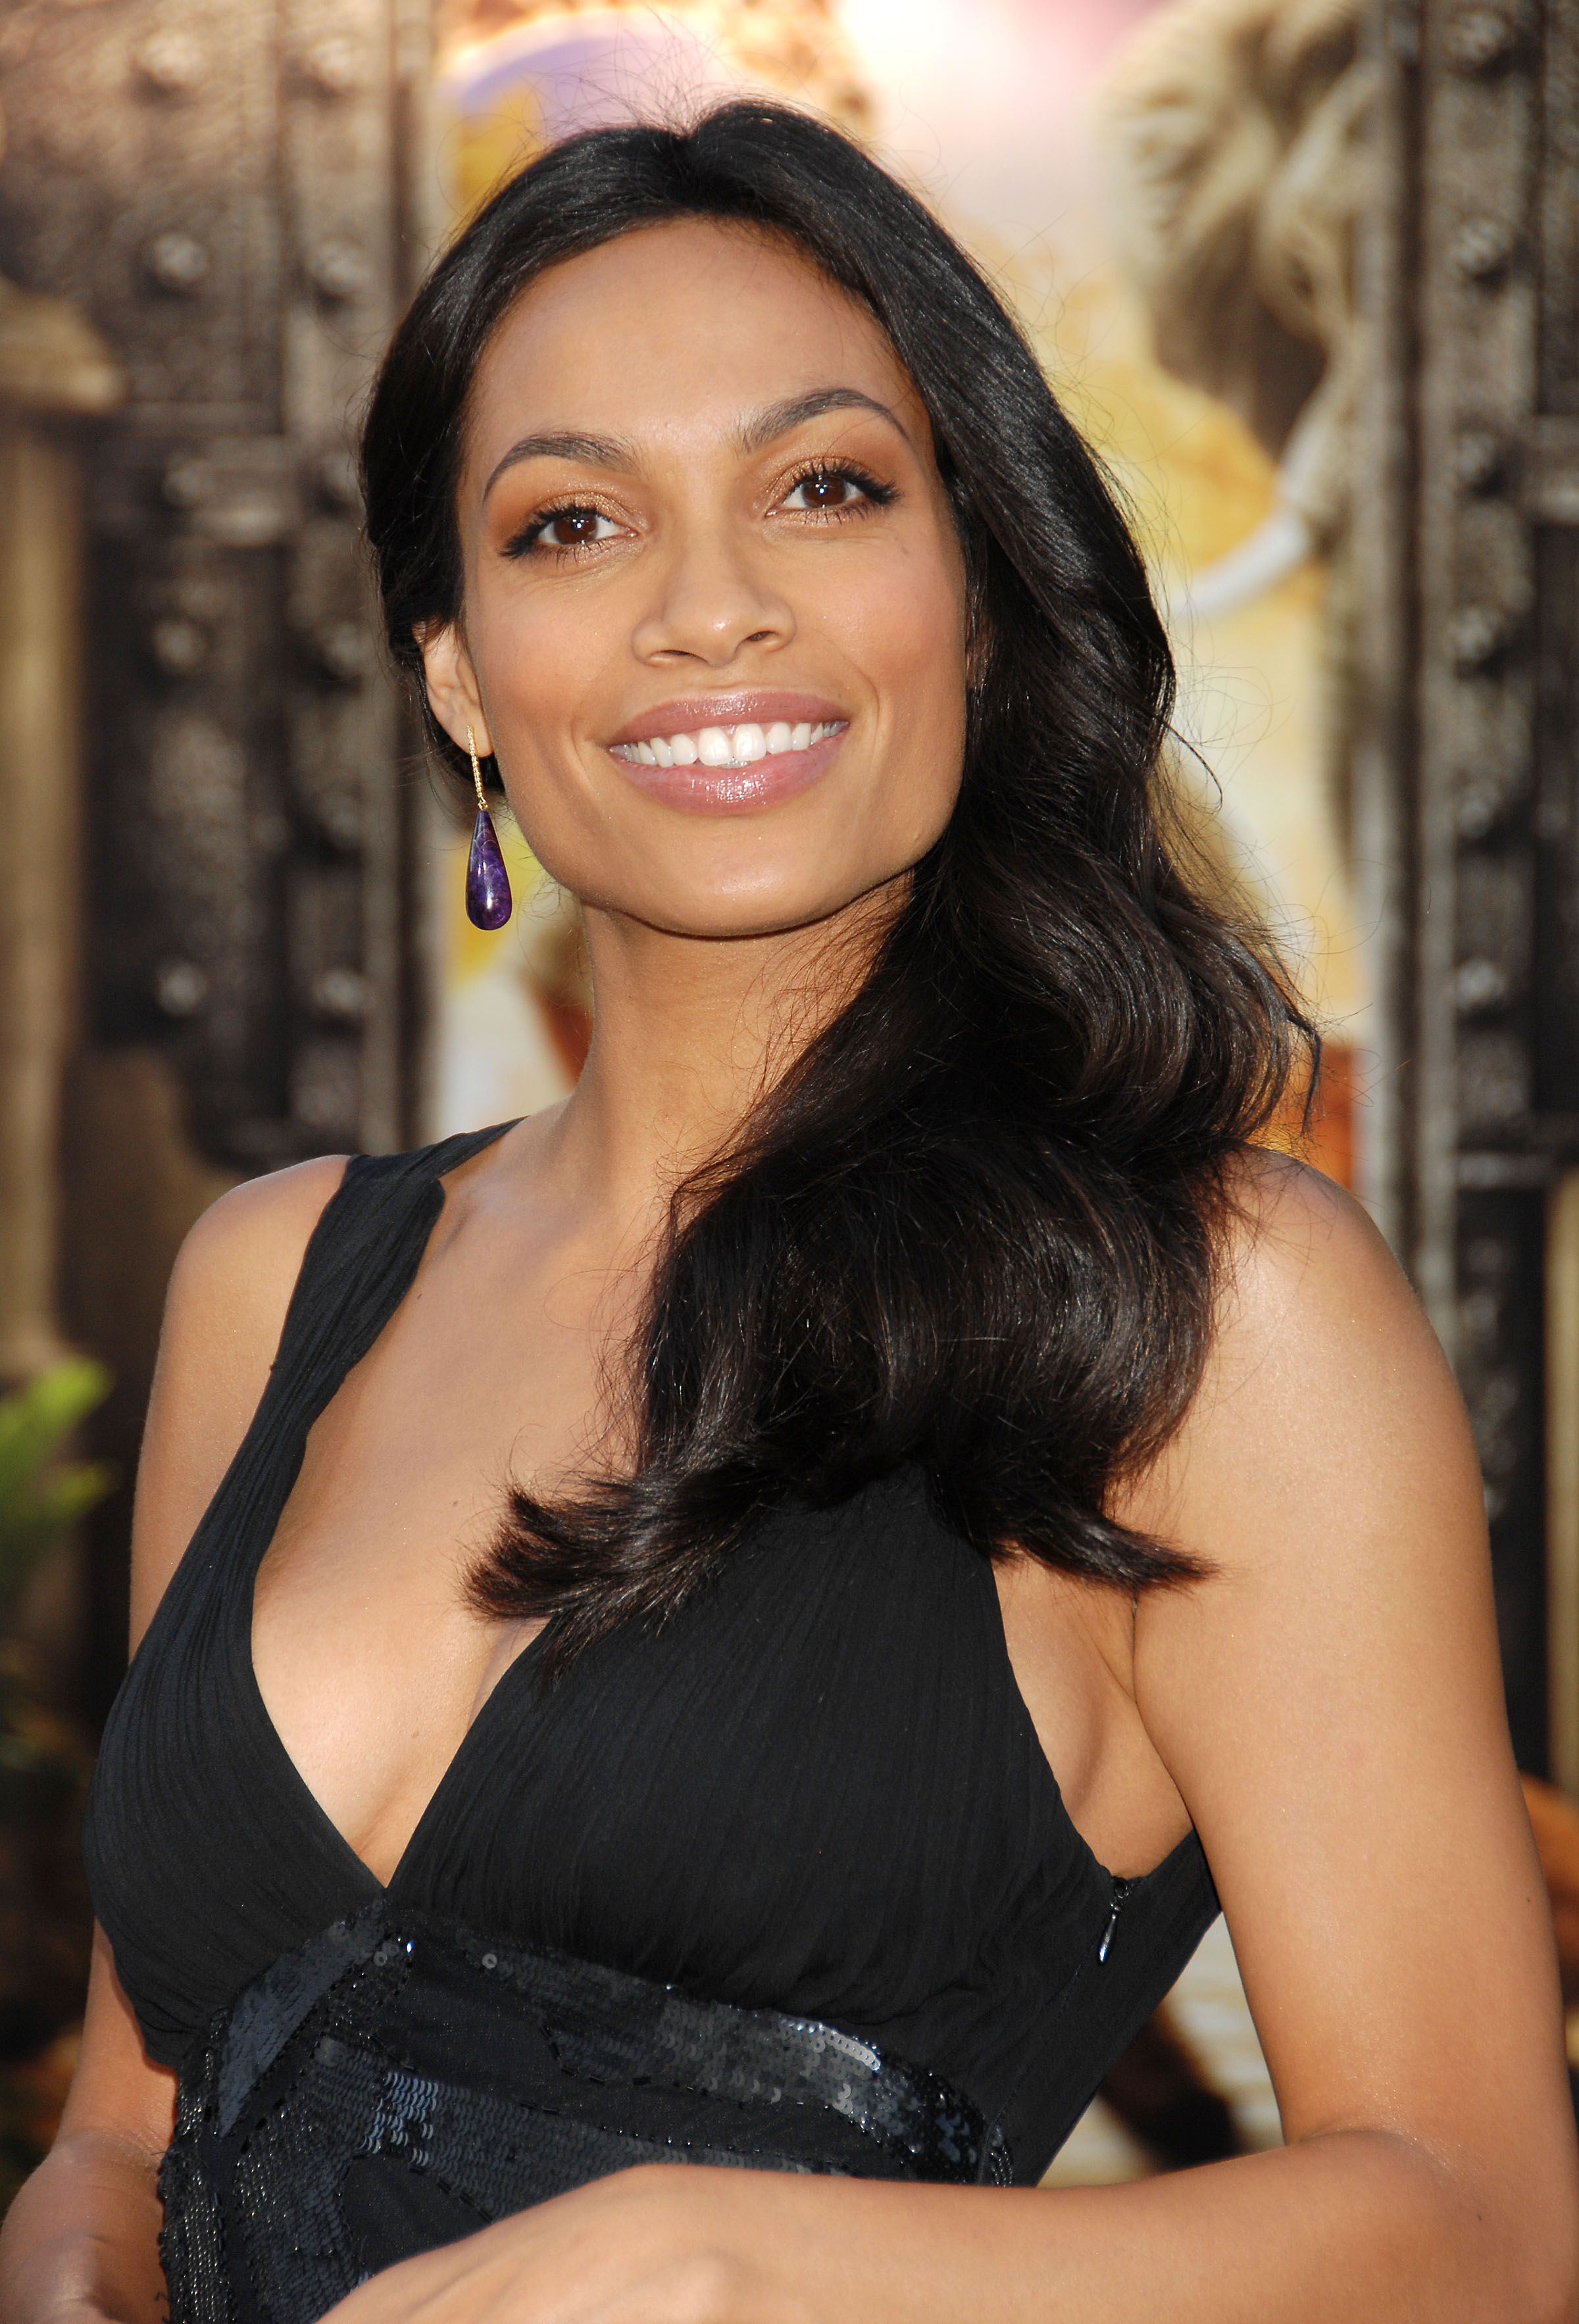 Rosario dawson dating in Australia